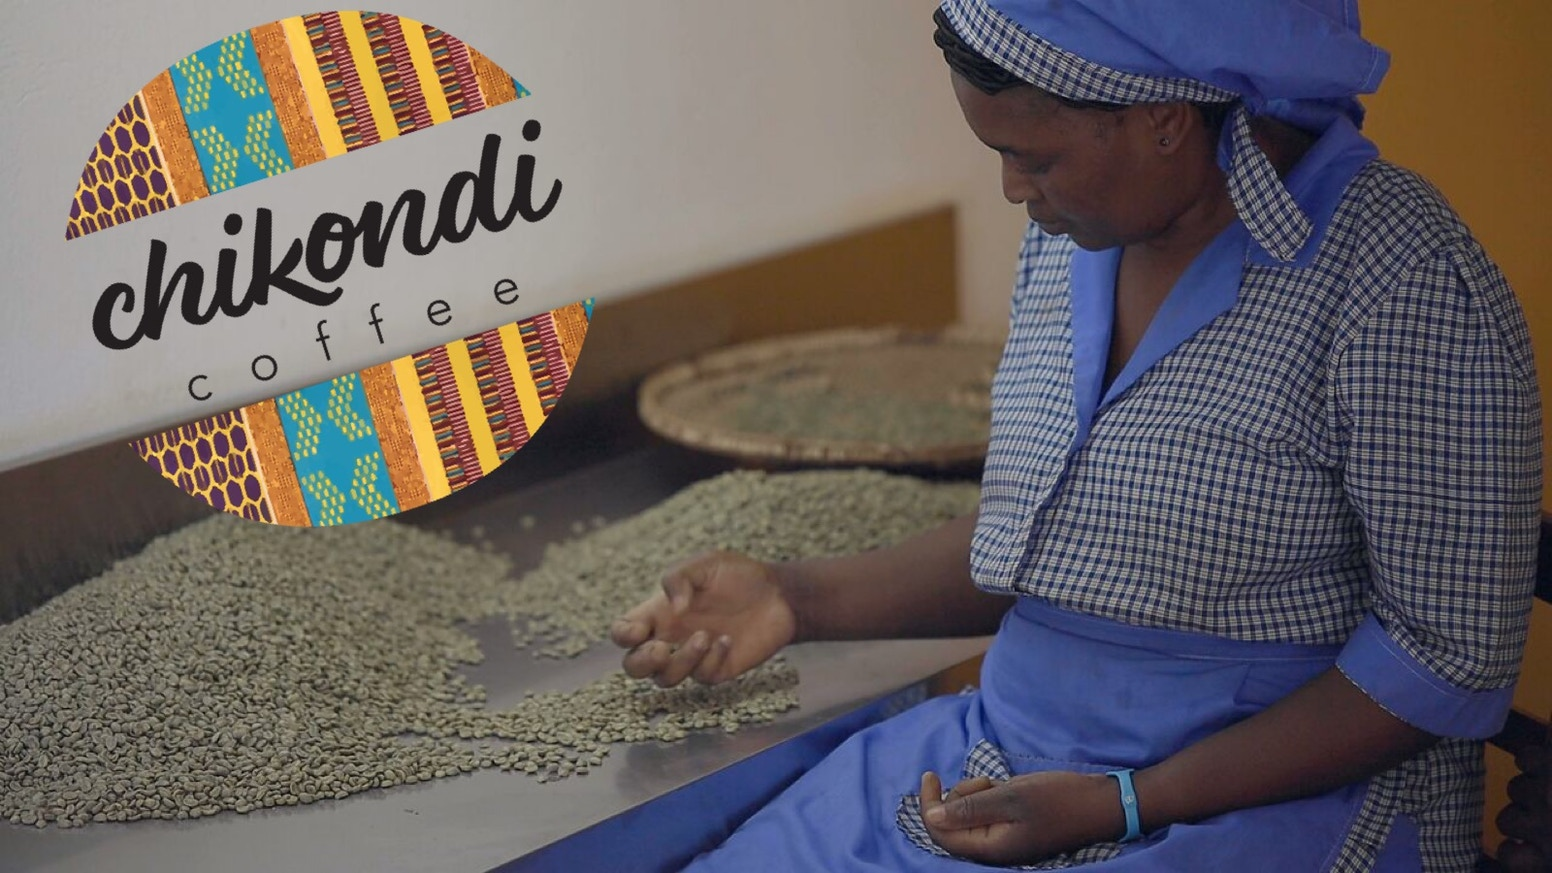 TOGETHER WE CAN: Transform our coffee-drinking into lasting impact, empowering communities in Zambia, Africa. CURRENTLY: choosing the most delicious coffee to bring to your home!